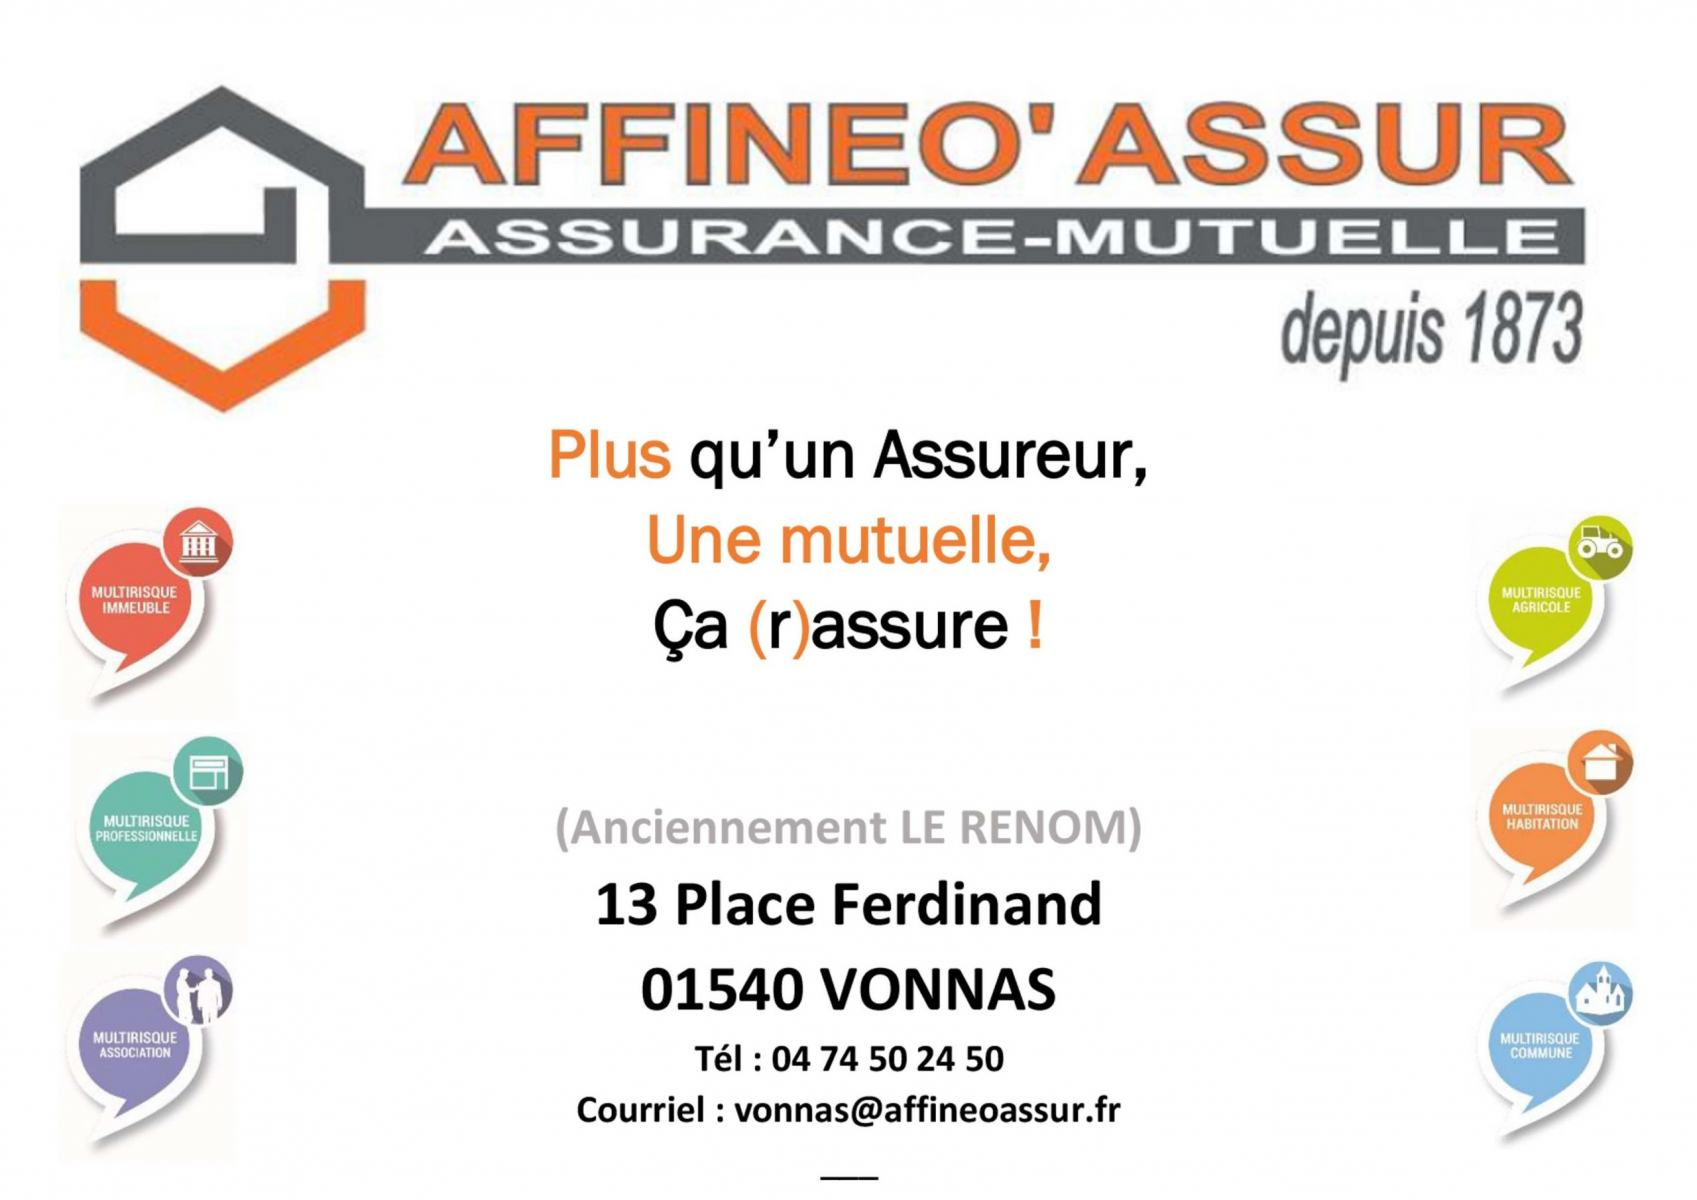 LOGO-AFFINASSUR-scaled